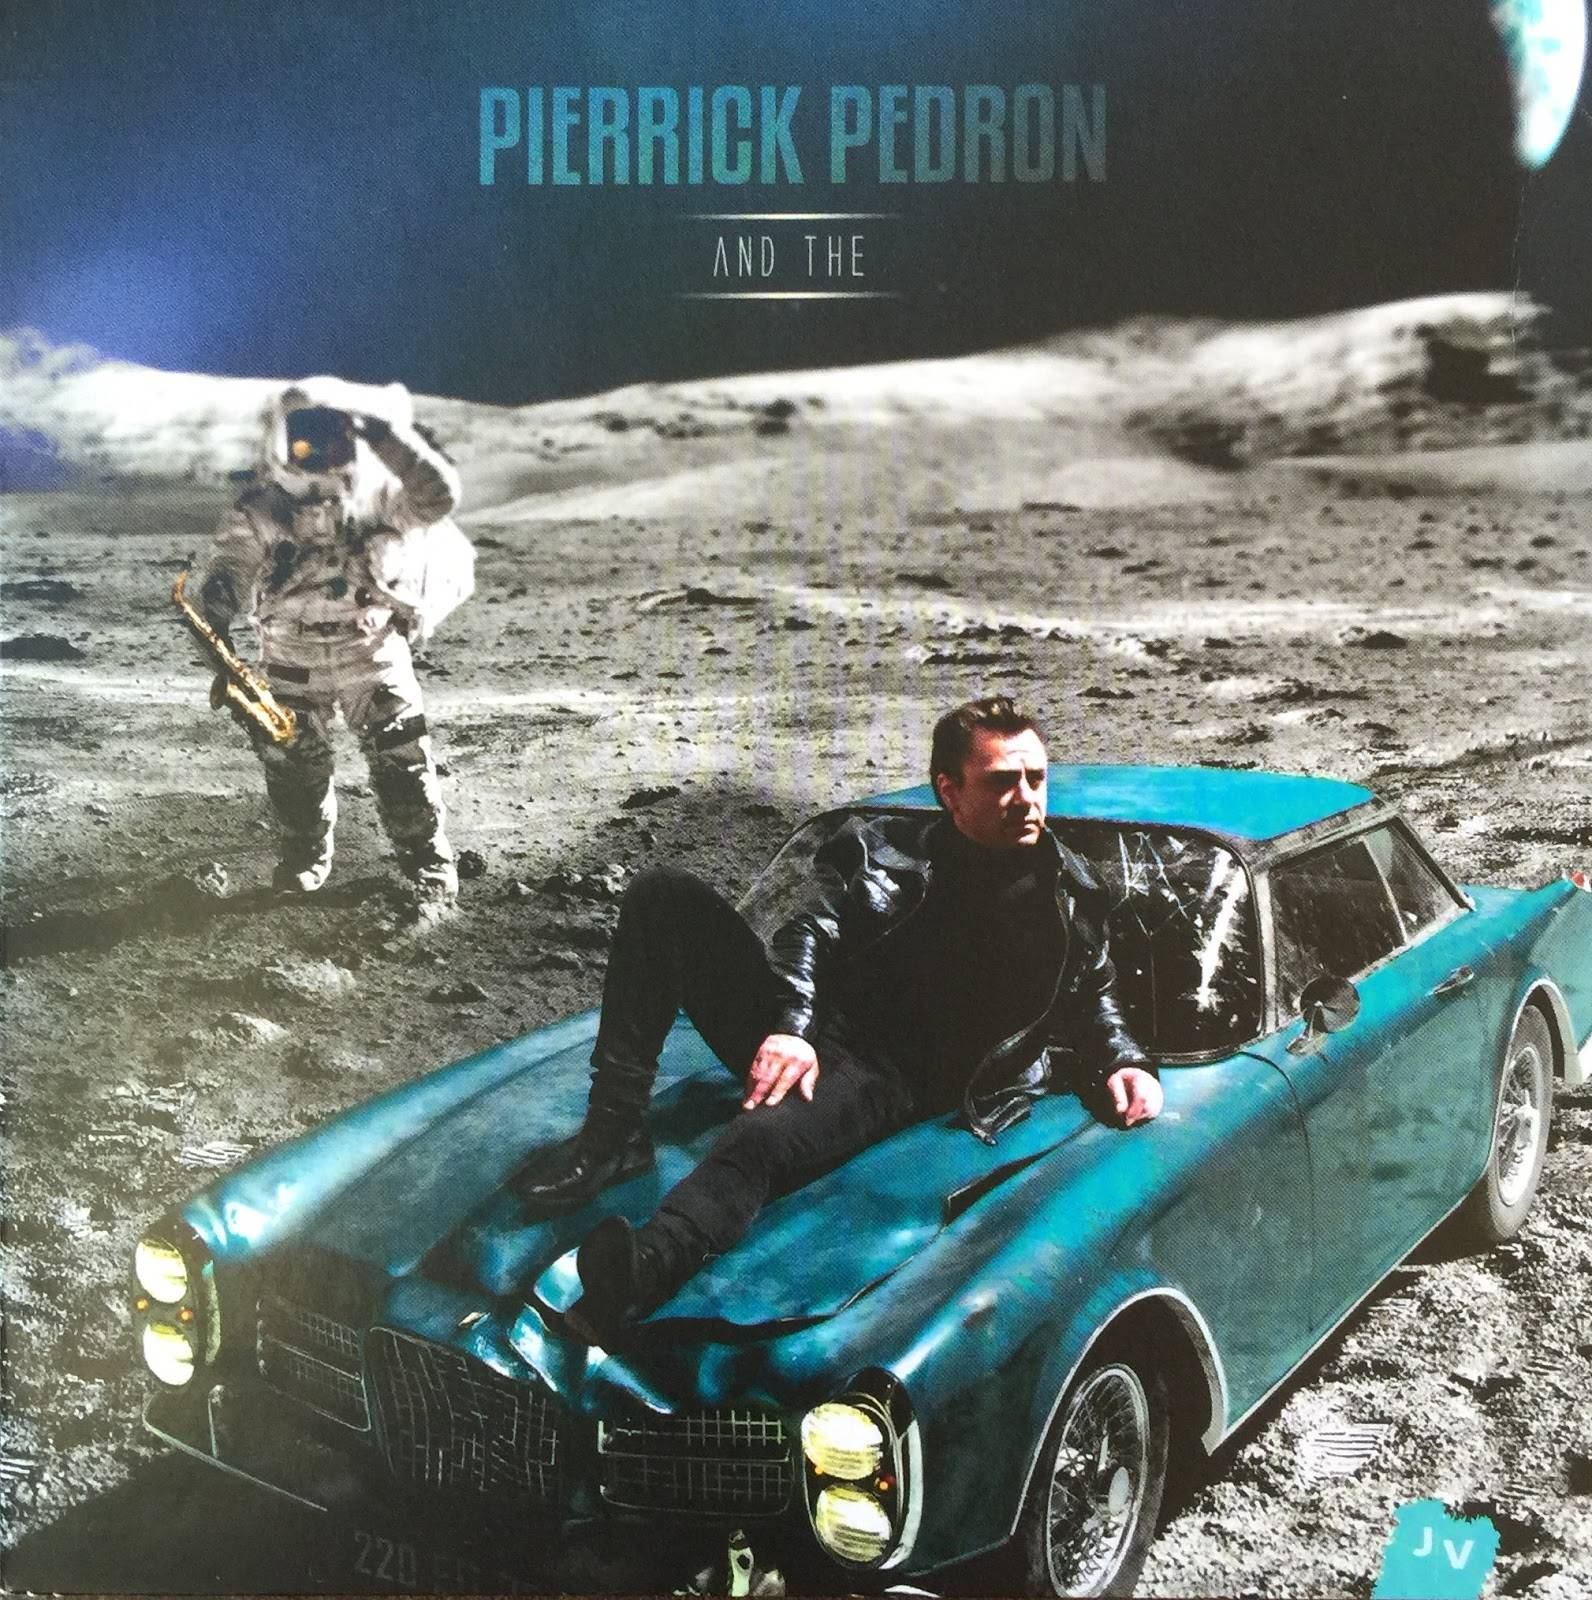 Pierrick Pedron - And The (2016)